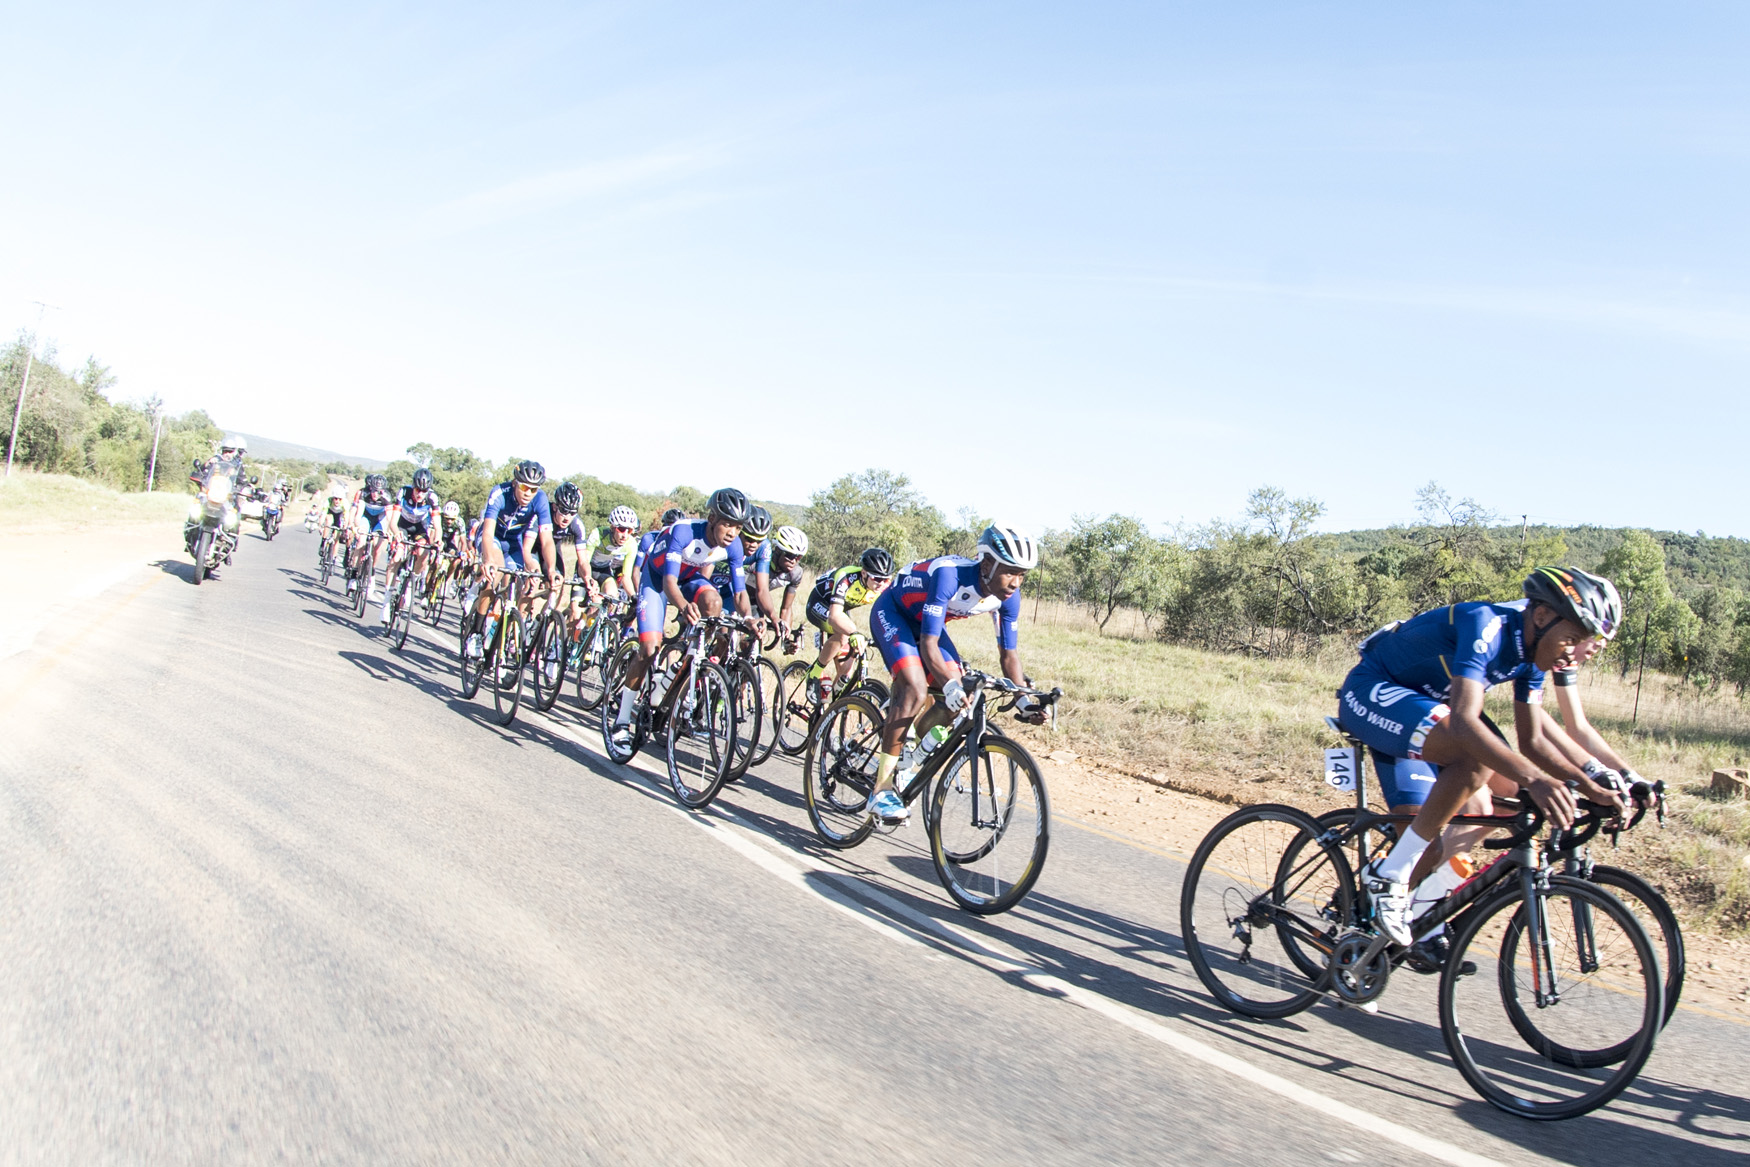 Nineteen domestic and international cycling teams raced from Bela Bela to Polokwane on Stage 1 of the 2019 Tour de Limpopo (UCI 2.2) from 14-18 May © Tour de Limpopo/Andrew Mc Fadden